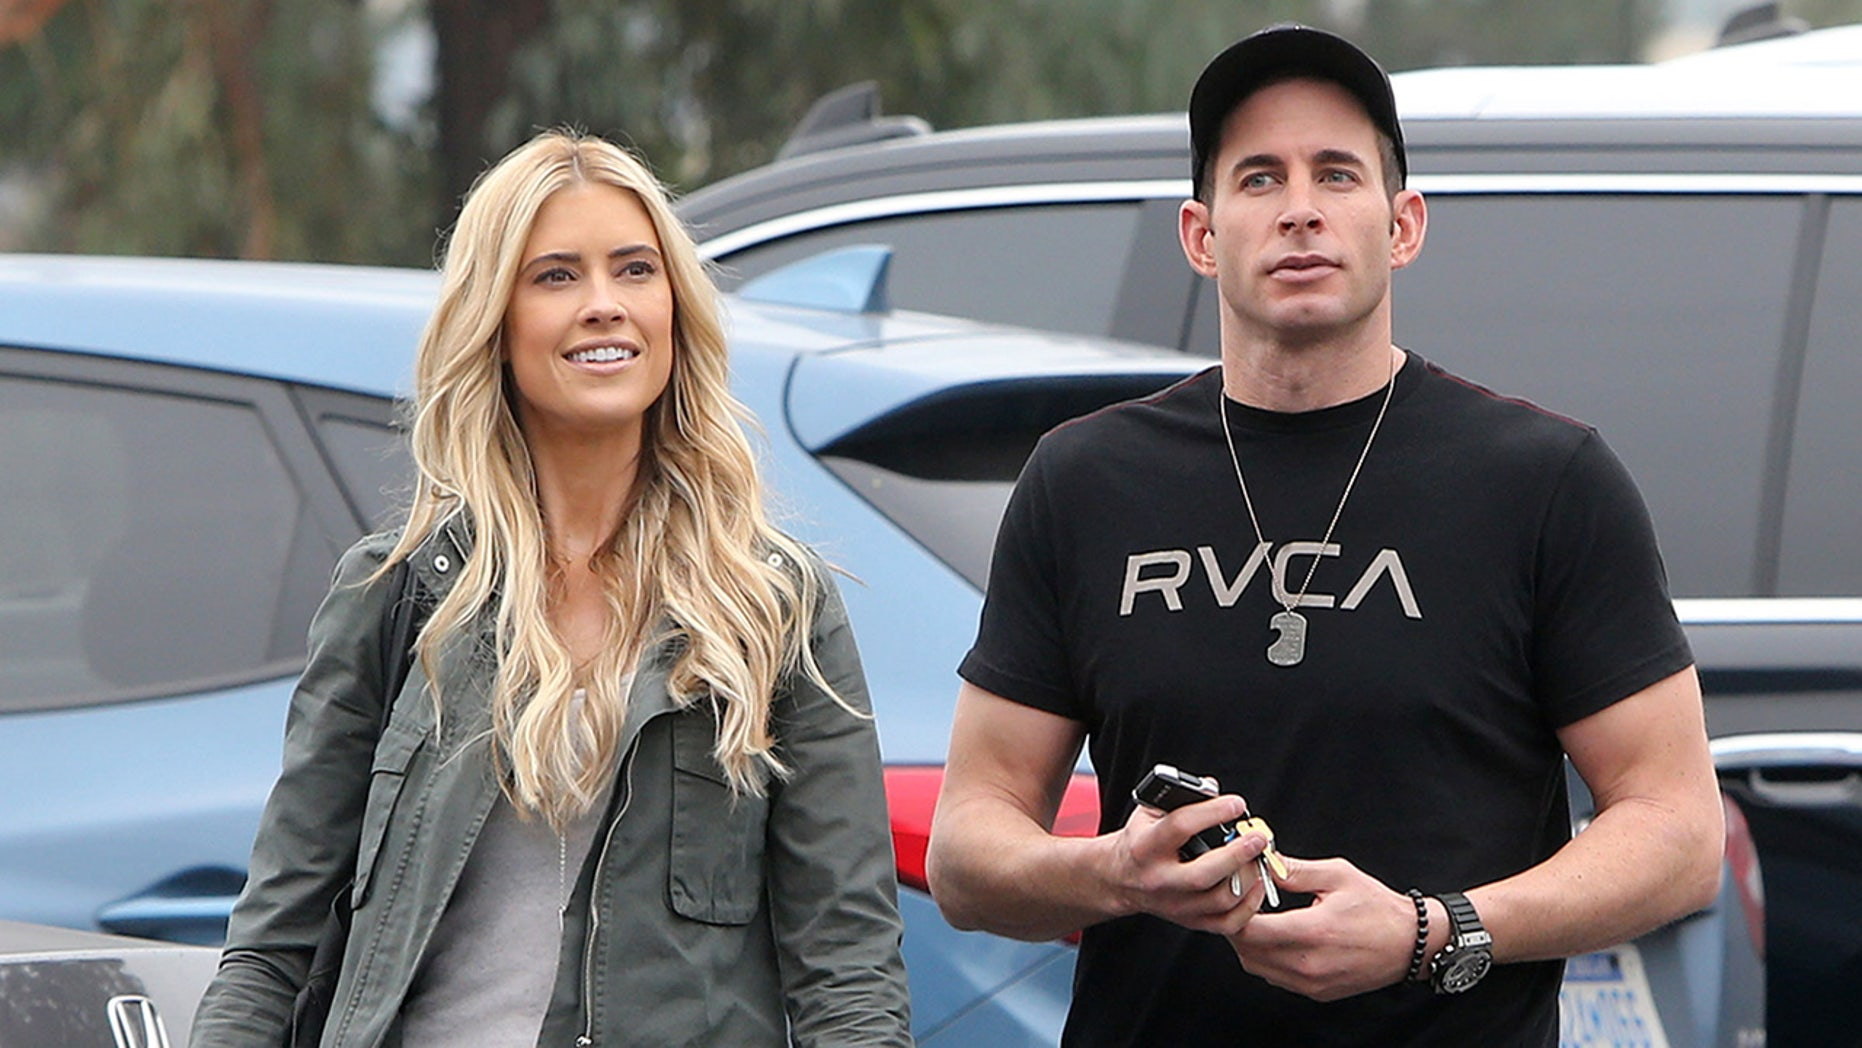 EXCLUSIVE: *NO WEB UNTIL 2AM PST, DECEMBER 16, 2016* *PREMIUM EXCLUSIVE RATES APPLY* Tarek and Christina El Moussa were all hugs and kisses as they were spotted together for the first time following their shock split announcement. The pair were all smiles as they met for a coffee in Los Angeles - dispelling rumors of a war between the stars of HGTV's Flip or Flop. Christina announced the couple were splitting earlier this week but the filing said they had been separated for six months when Tarek scared his wife and friends when he went hiking with a gun. So concerned were authorities that a Sheriff's Helicopter was called to where Tarek was hiking.